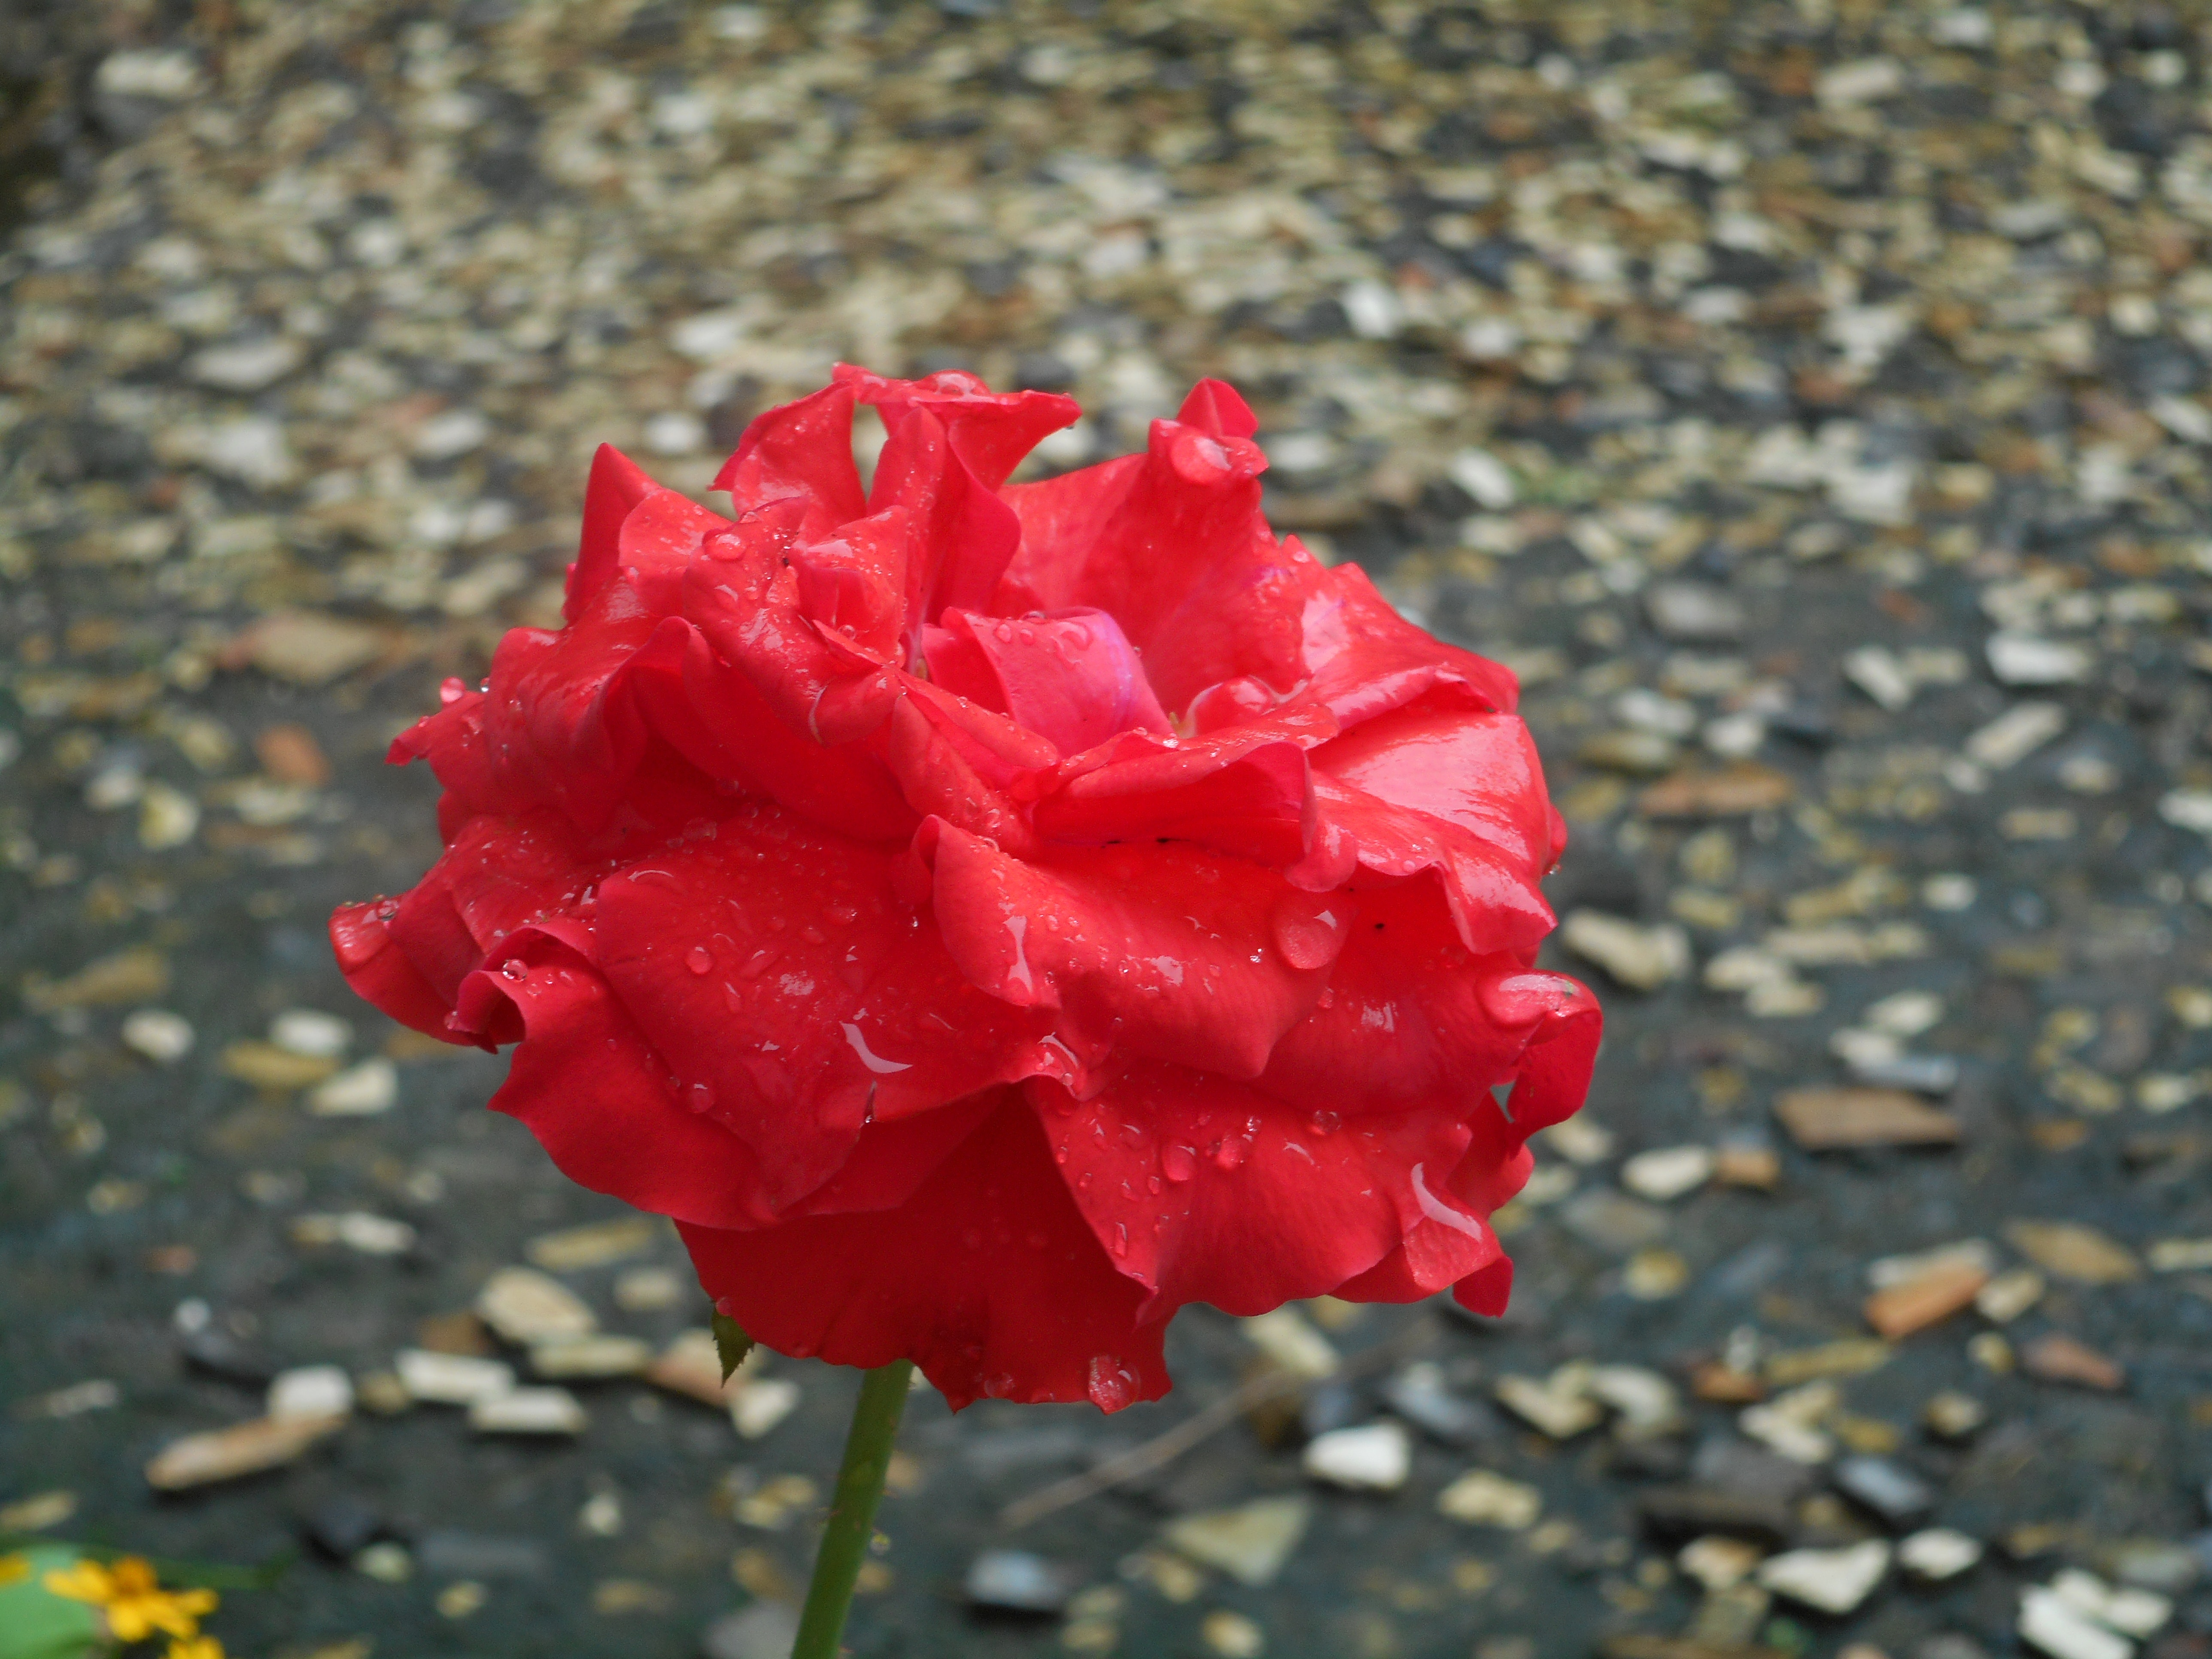 Free stock photo of beautiful flowers red flowers red roses free download izmirmasajfo